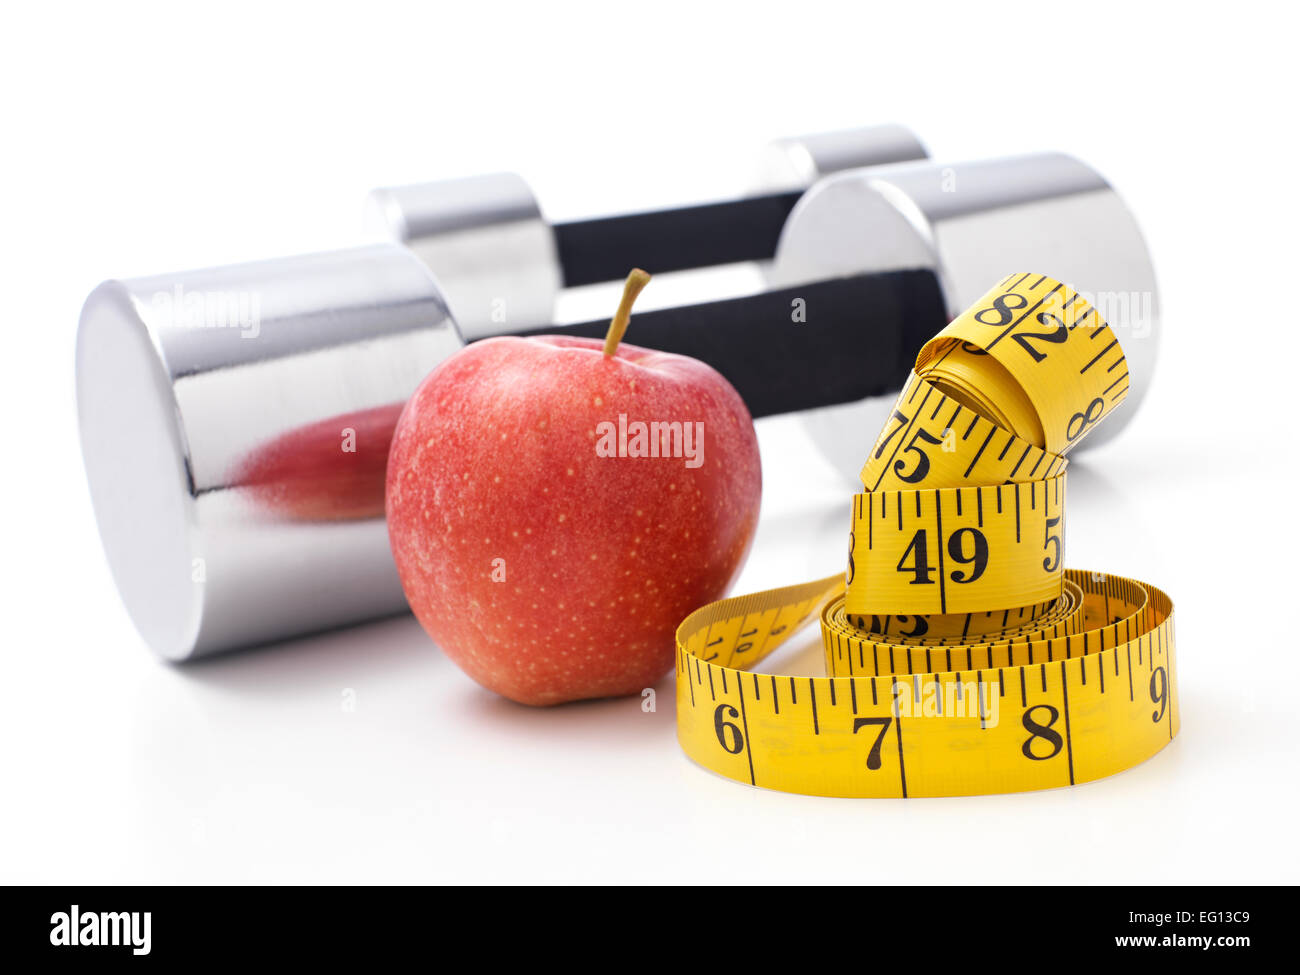 Gym Dumbbells with an Apple - Stock Image